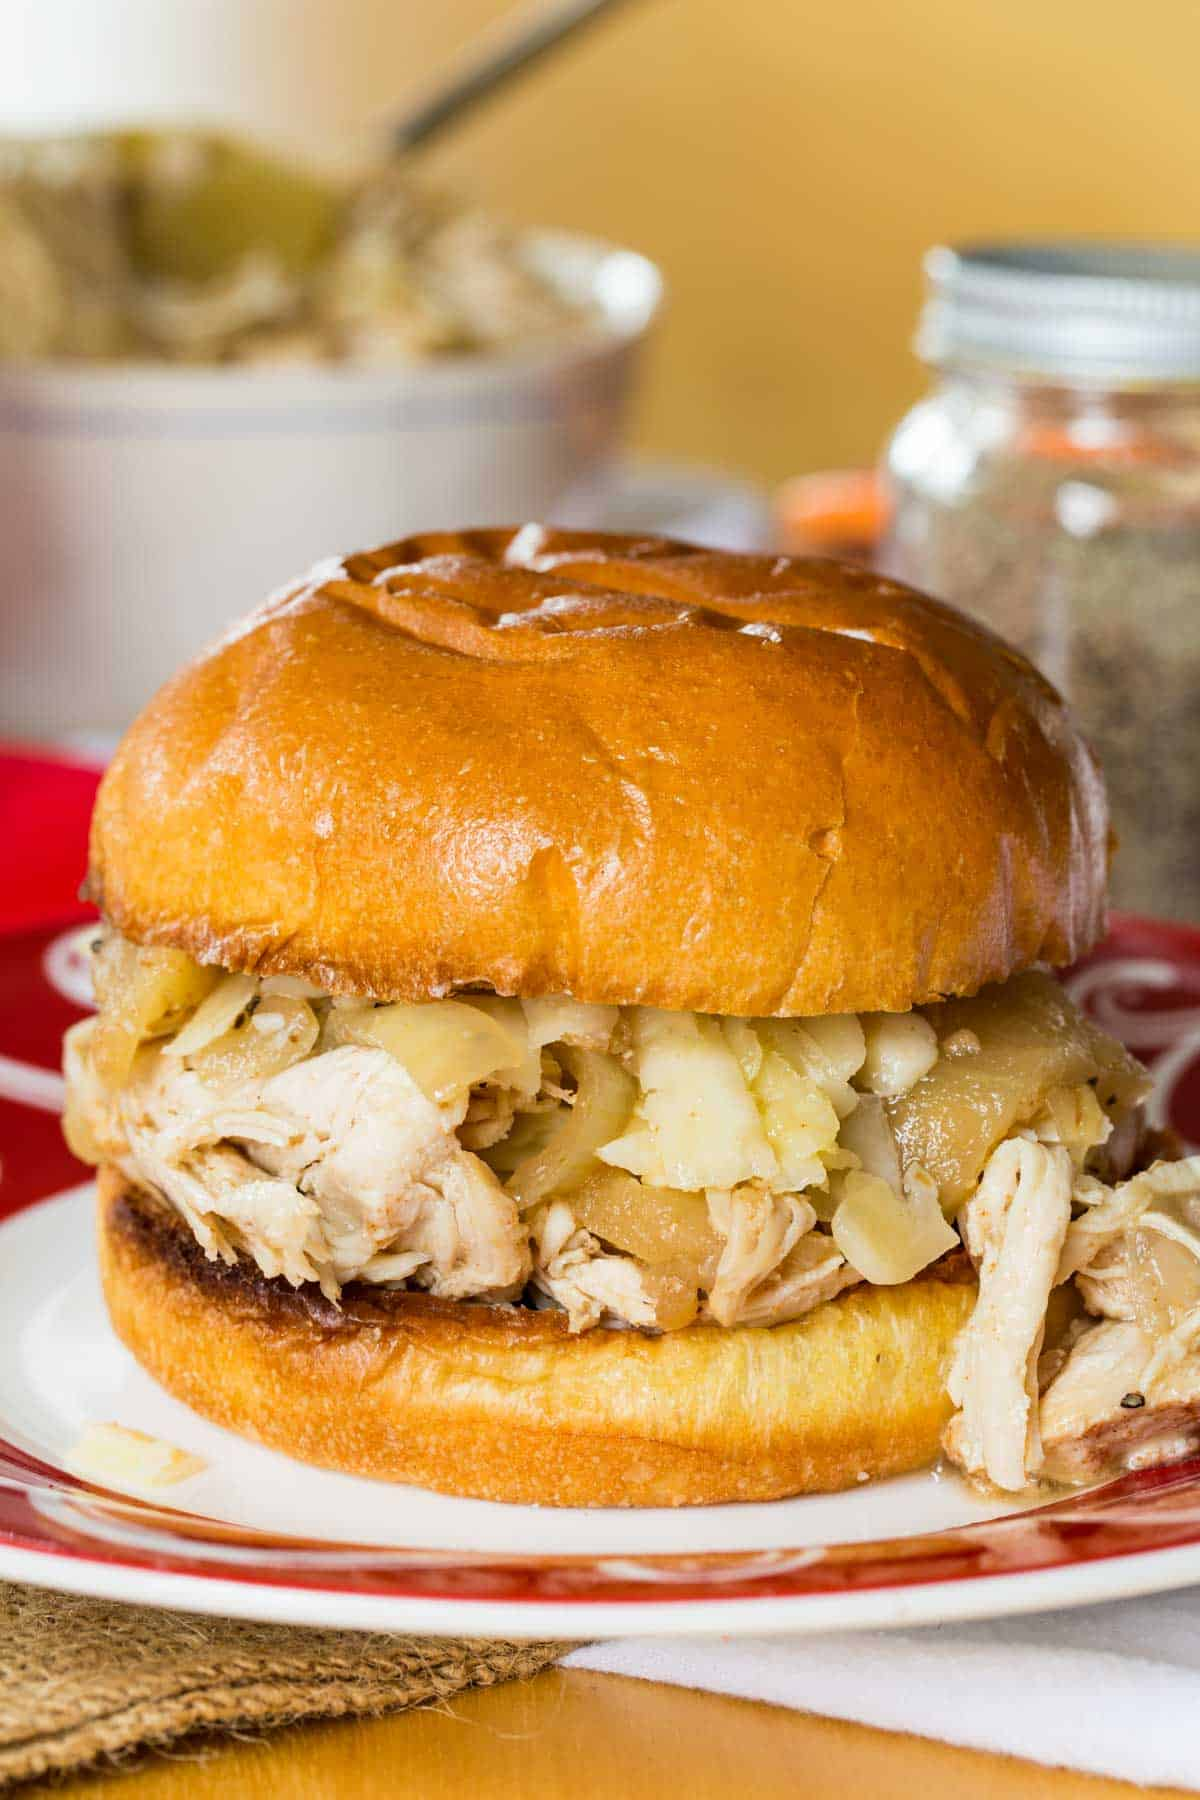 Slow Cooker Apple Cider Chicken shredded and piled on a brioche bun with cheddar cheese